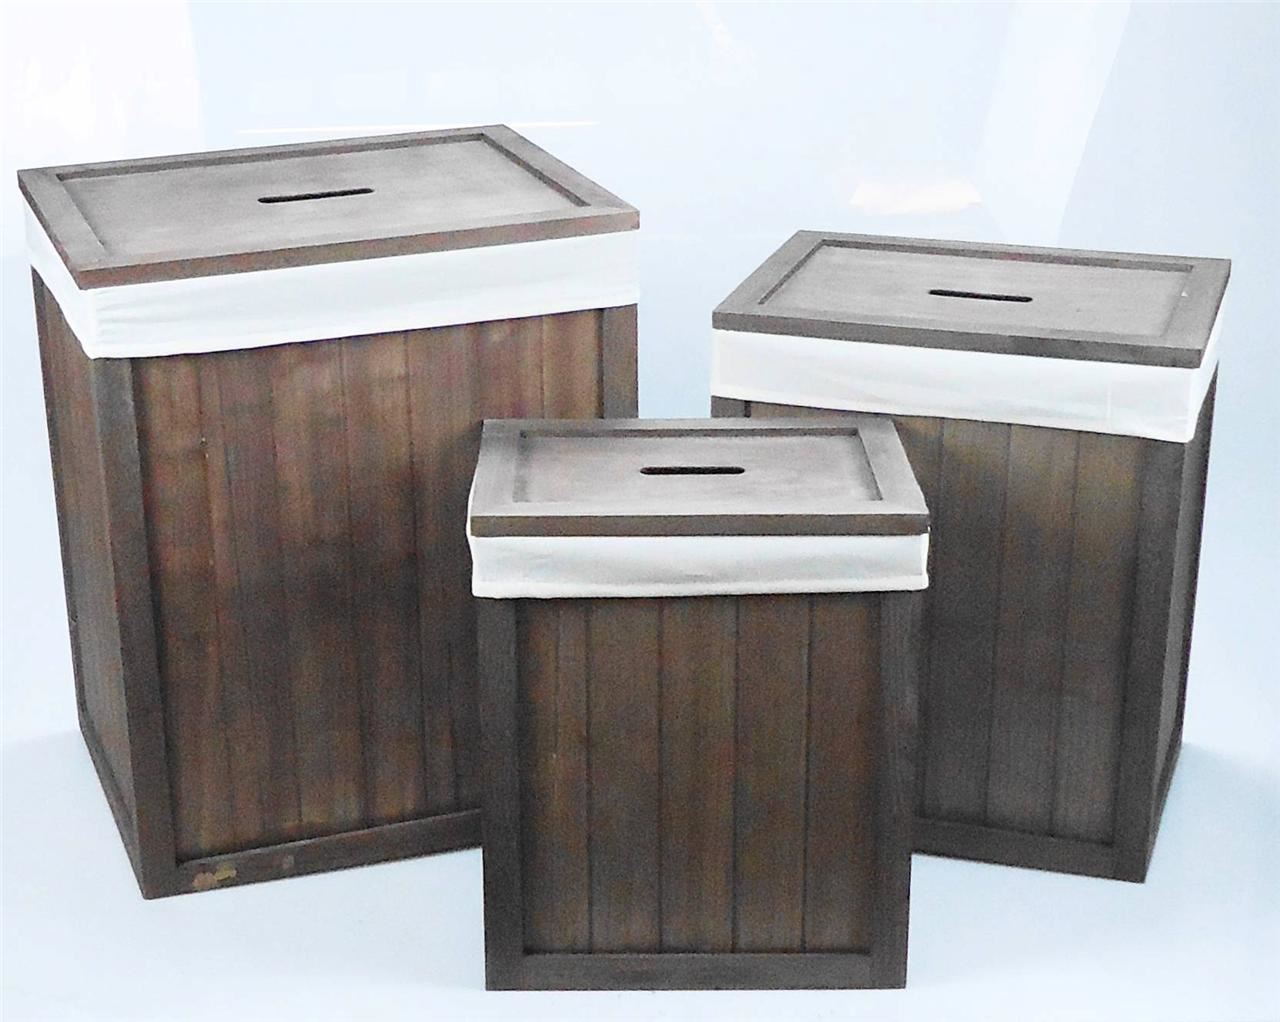 Wooden-Brown-White-Kids-Playroom-Toy-Box-Chest- & Wooden Brown White Kids Playroom Toy Box Chest Bathroom Laundry ... Aboutintivar.Com